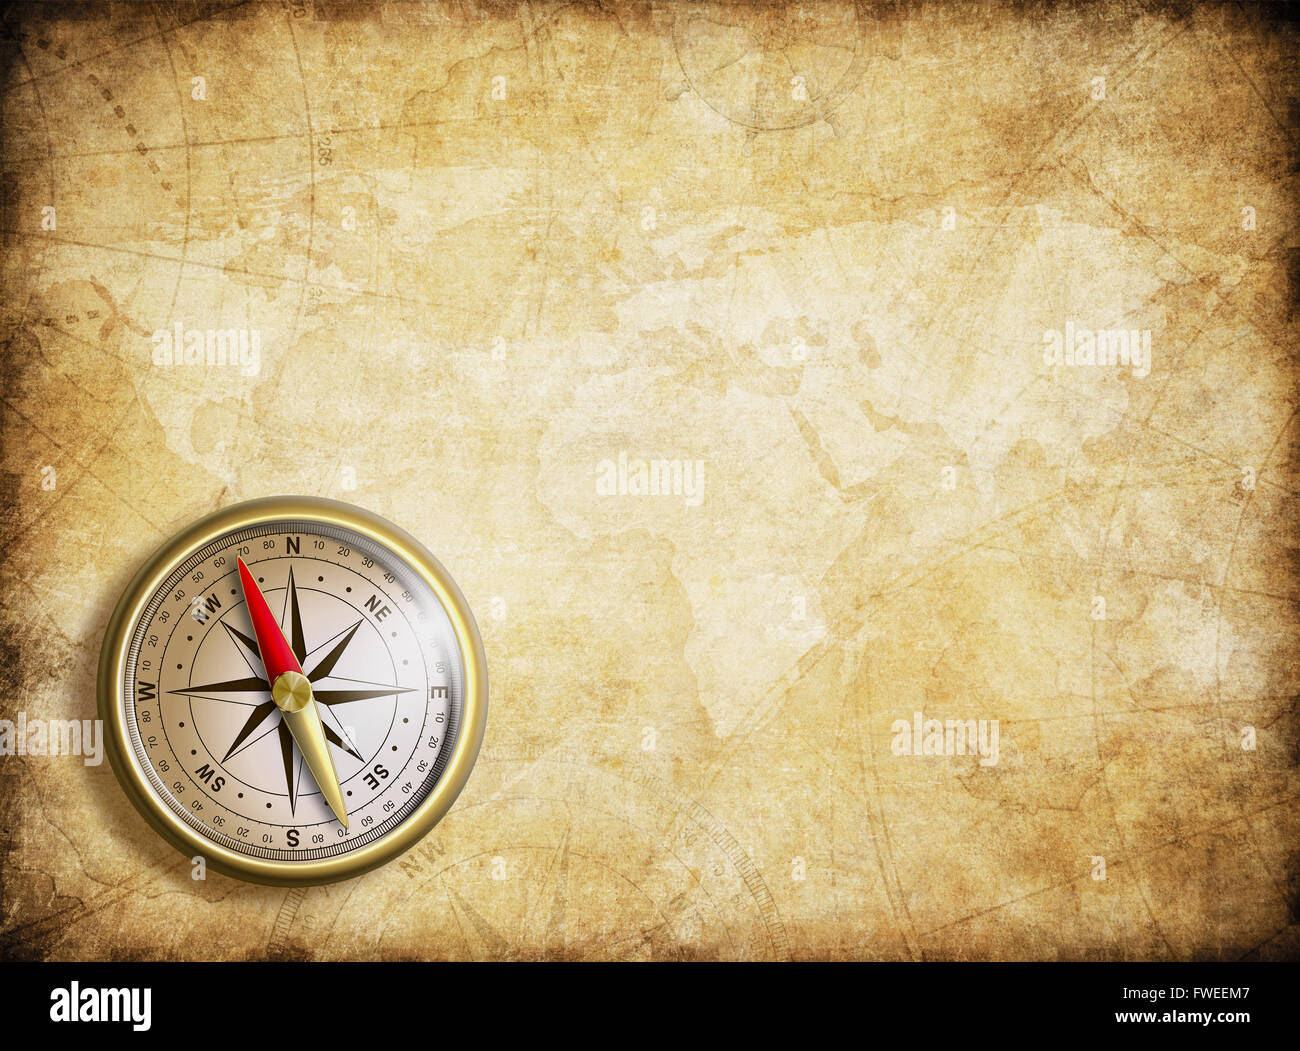 Vintage Map Background With Compass Stock Photo 101737111